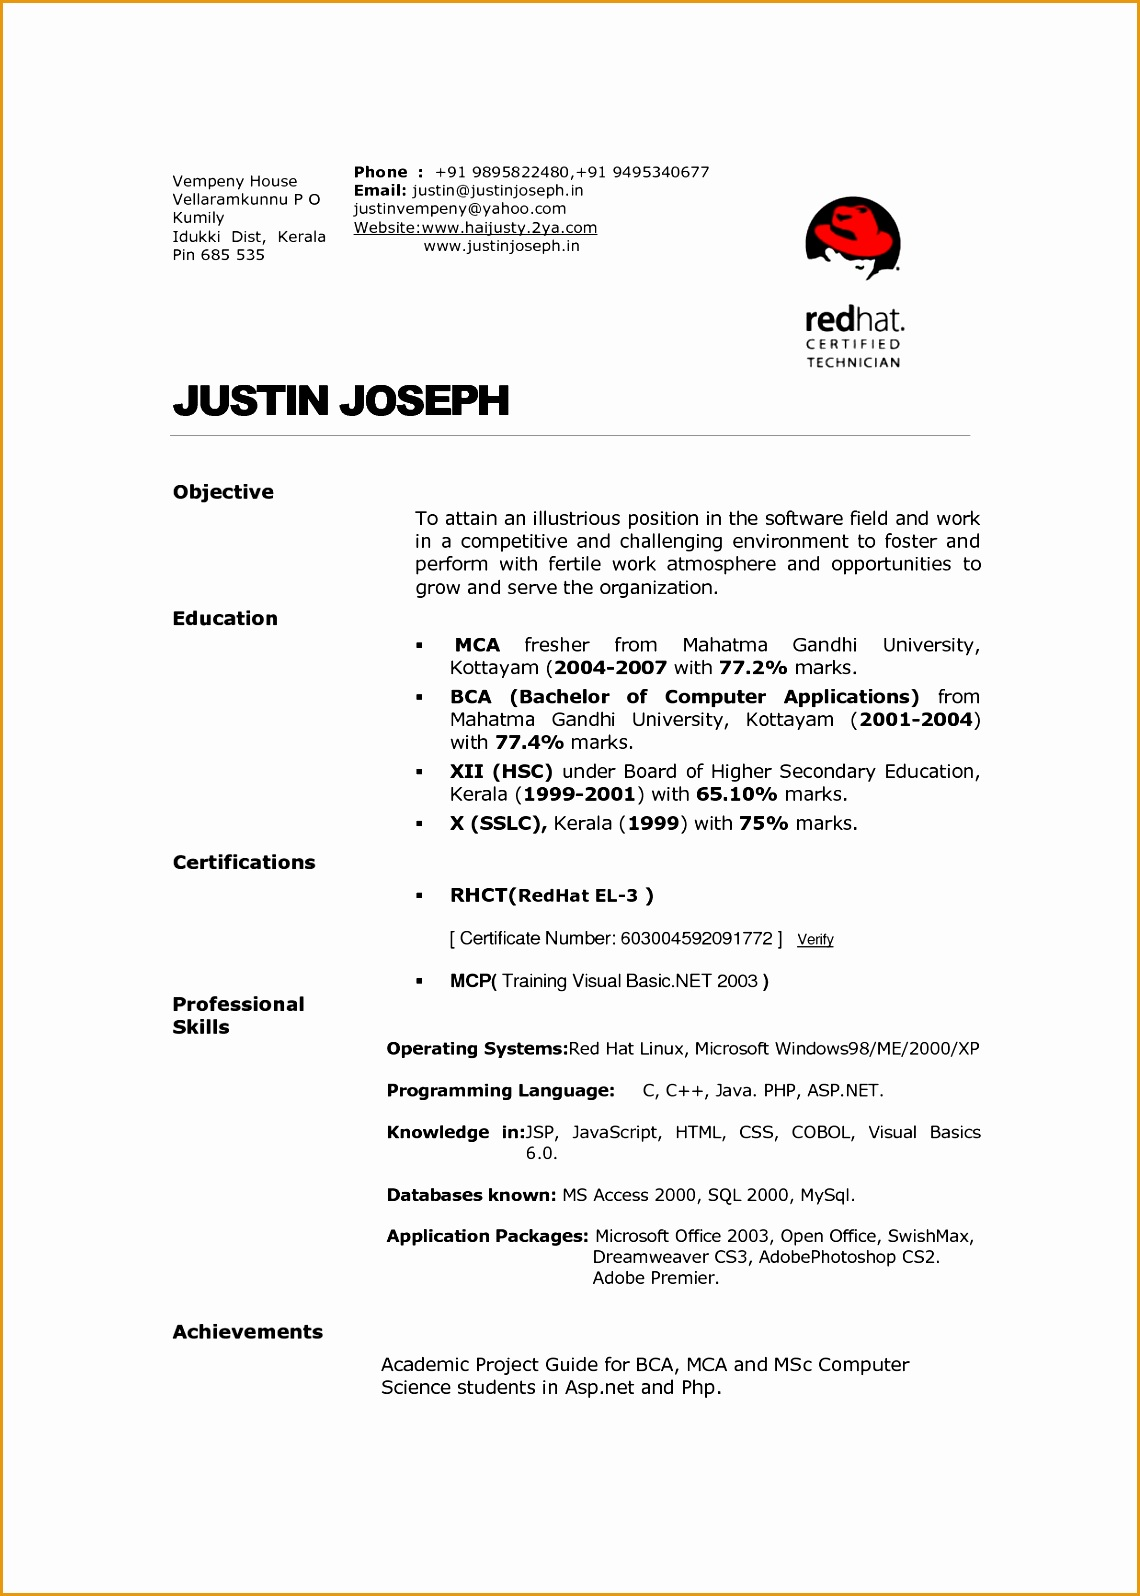 How To Create A Resume Template In Openoffice 6 Hospitality Curriculum Vitae Free Samples Examples